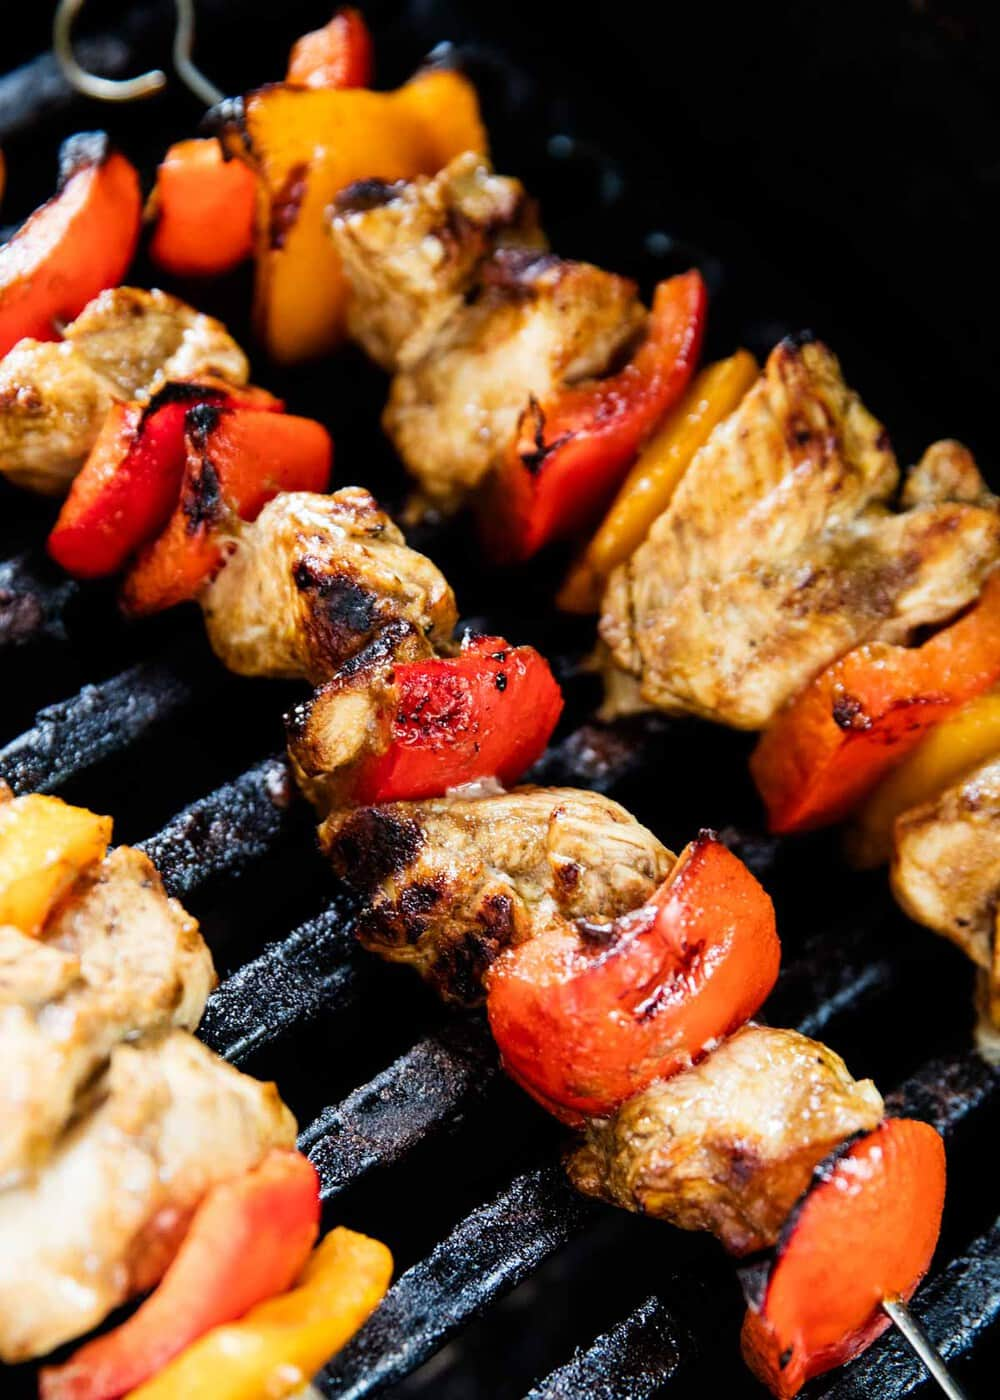 chicken kabobs being cooked on the grill